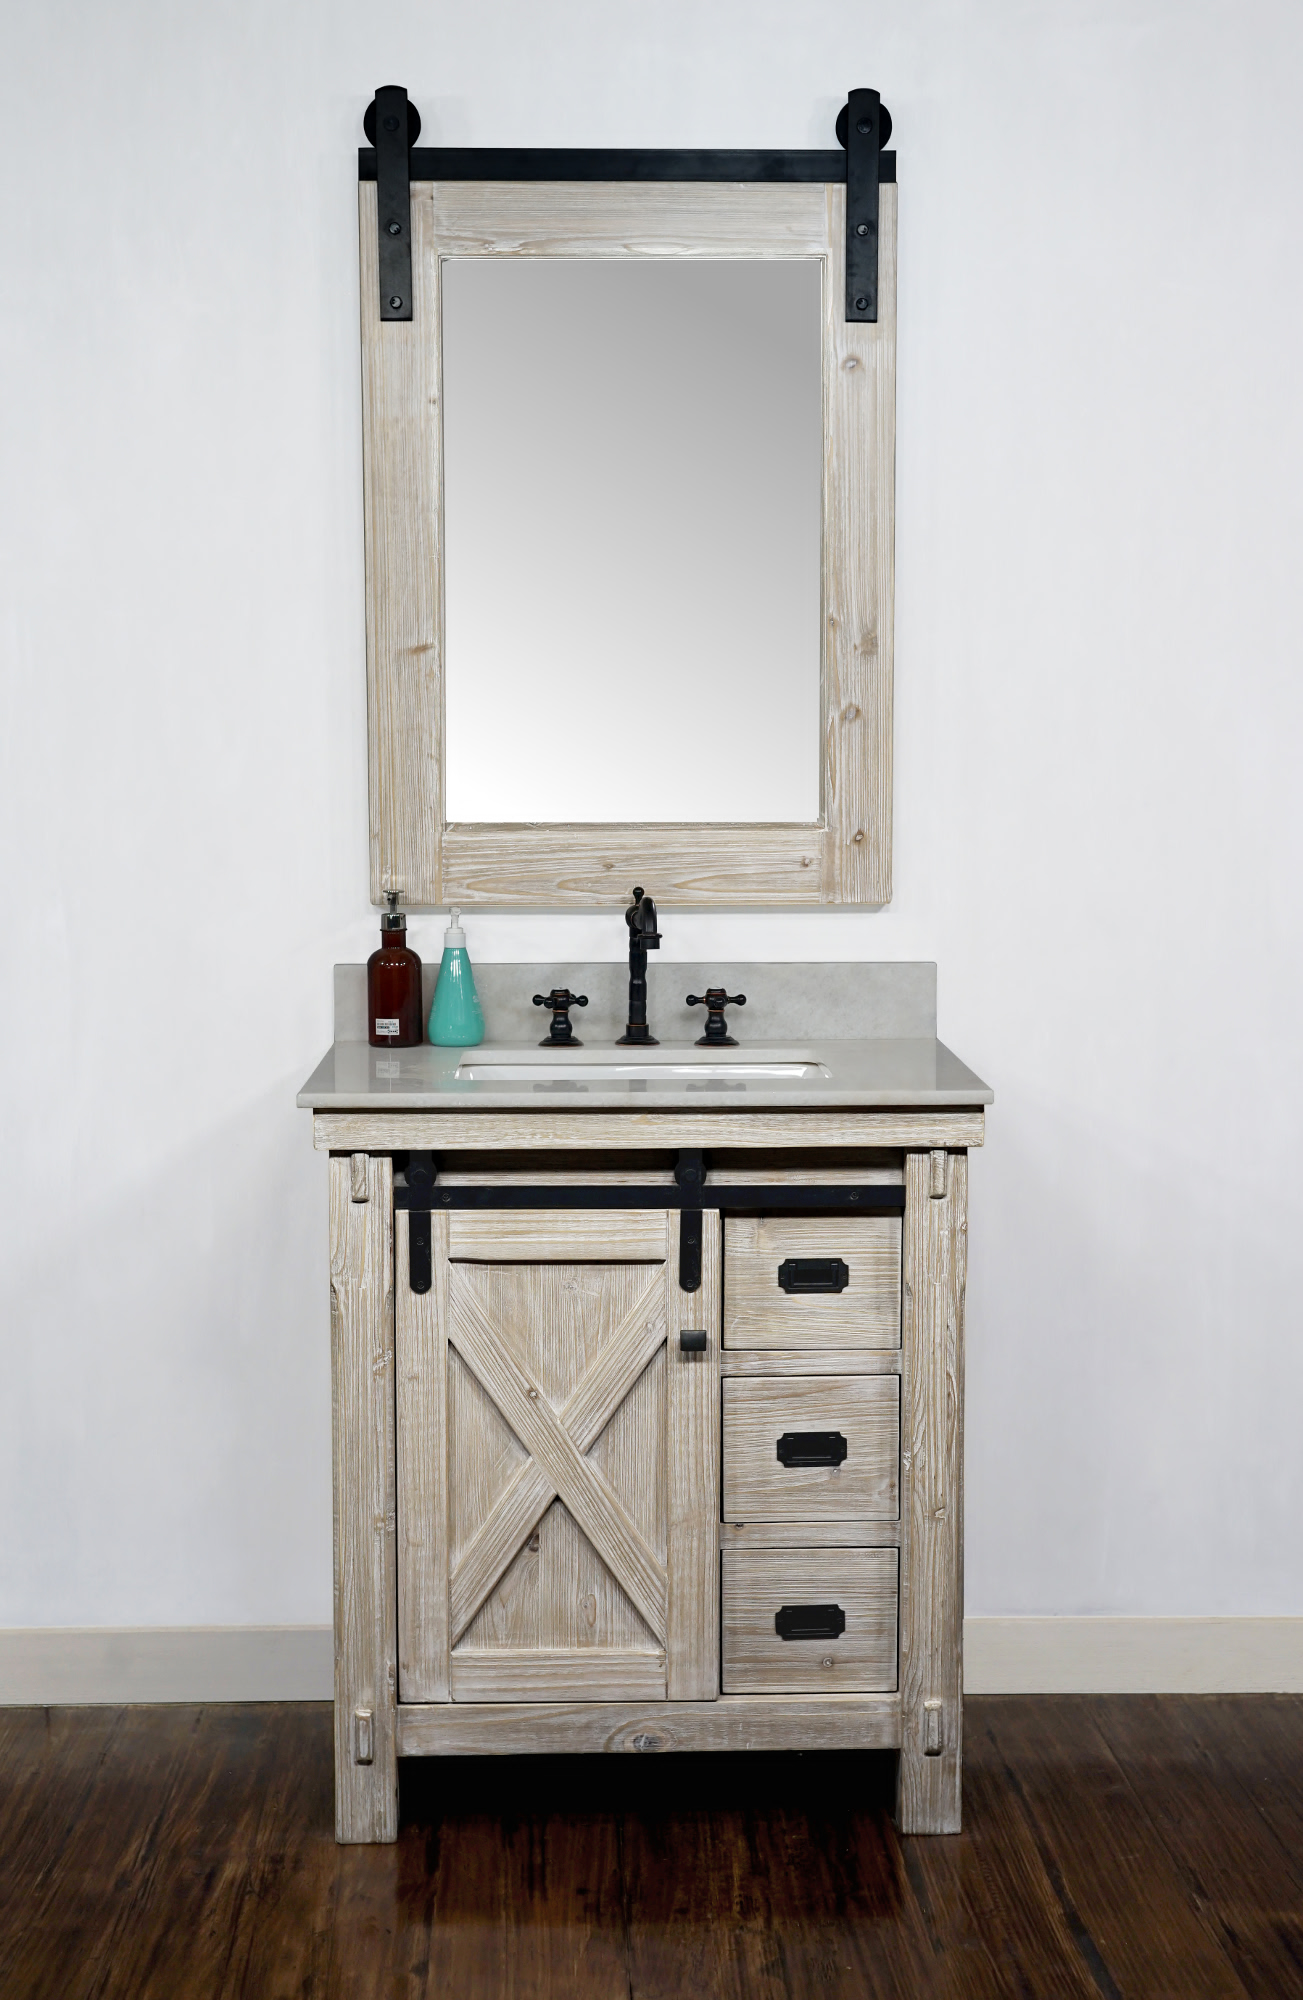 "30"" Rustic Solid Fir Barn Door Style Single Sink Vanity - No Faucet with Countertop Options"